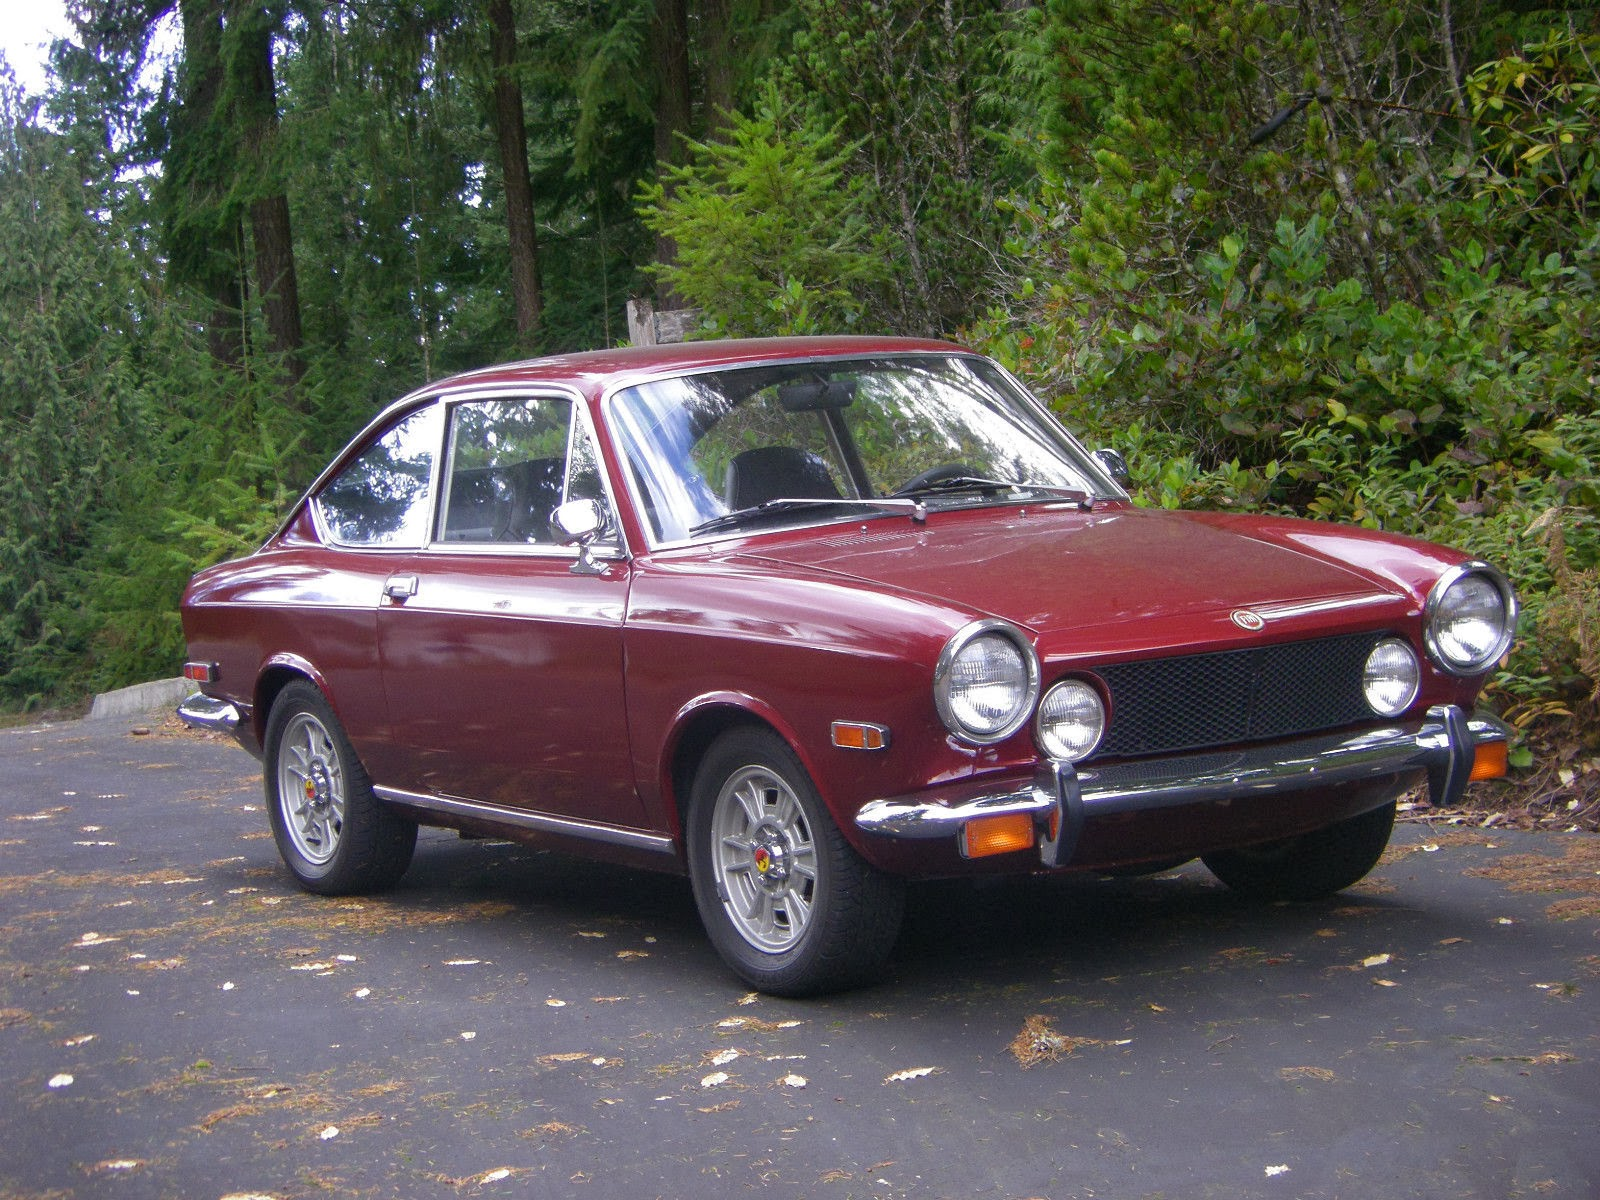 Daily turismo 5k freshen it again tomorrow 1971 fiat 850 sport coupe restomod - Fiat 850 sport coupe for sale ...